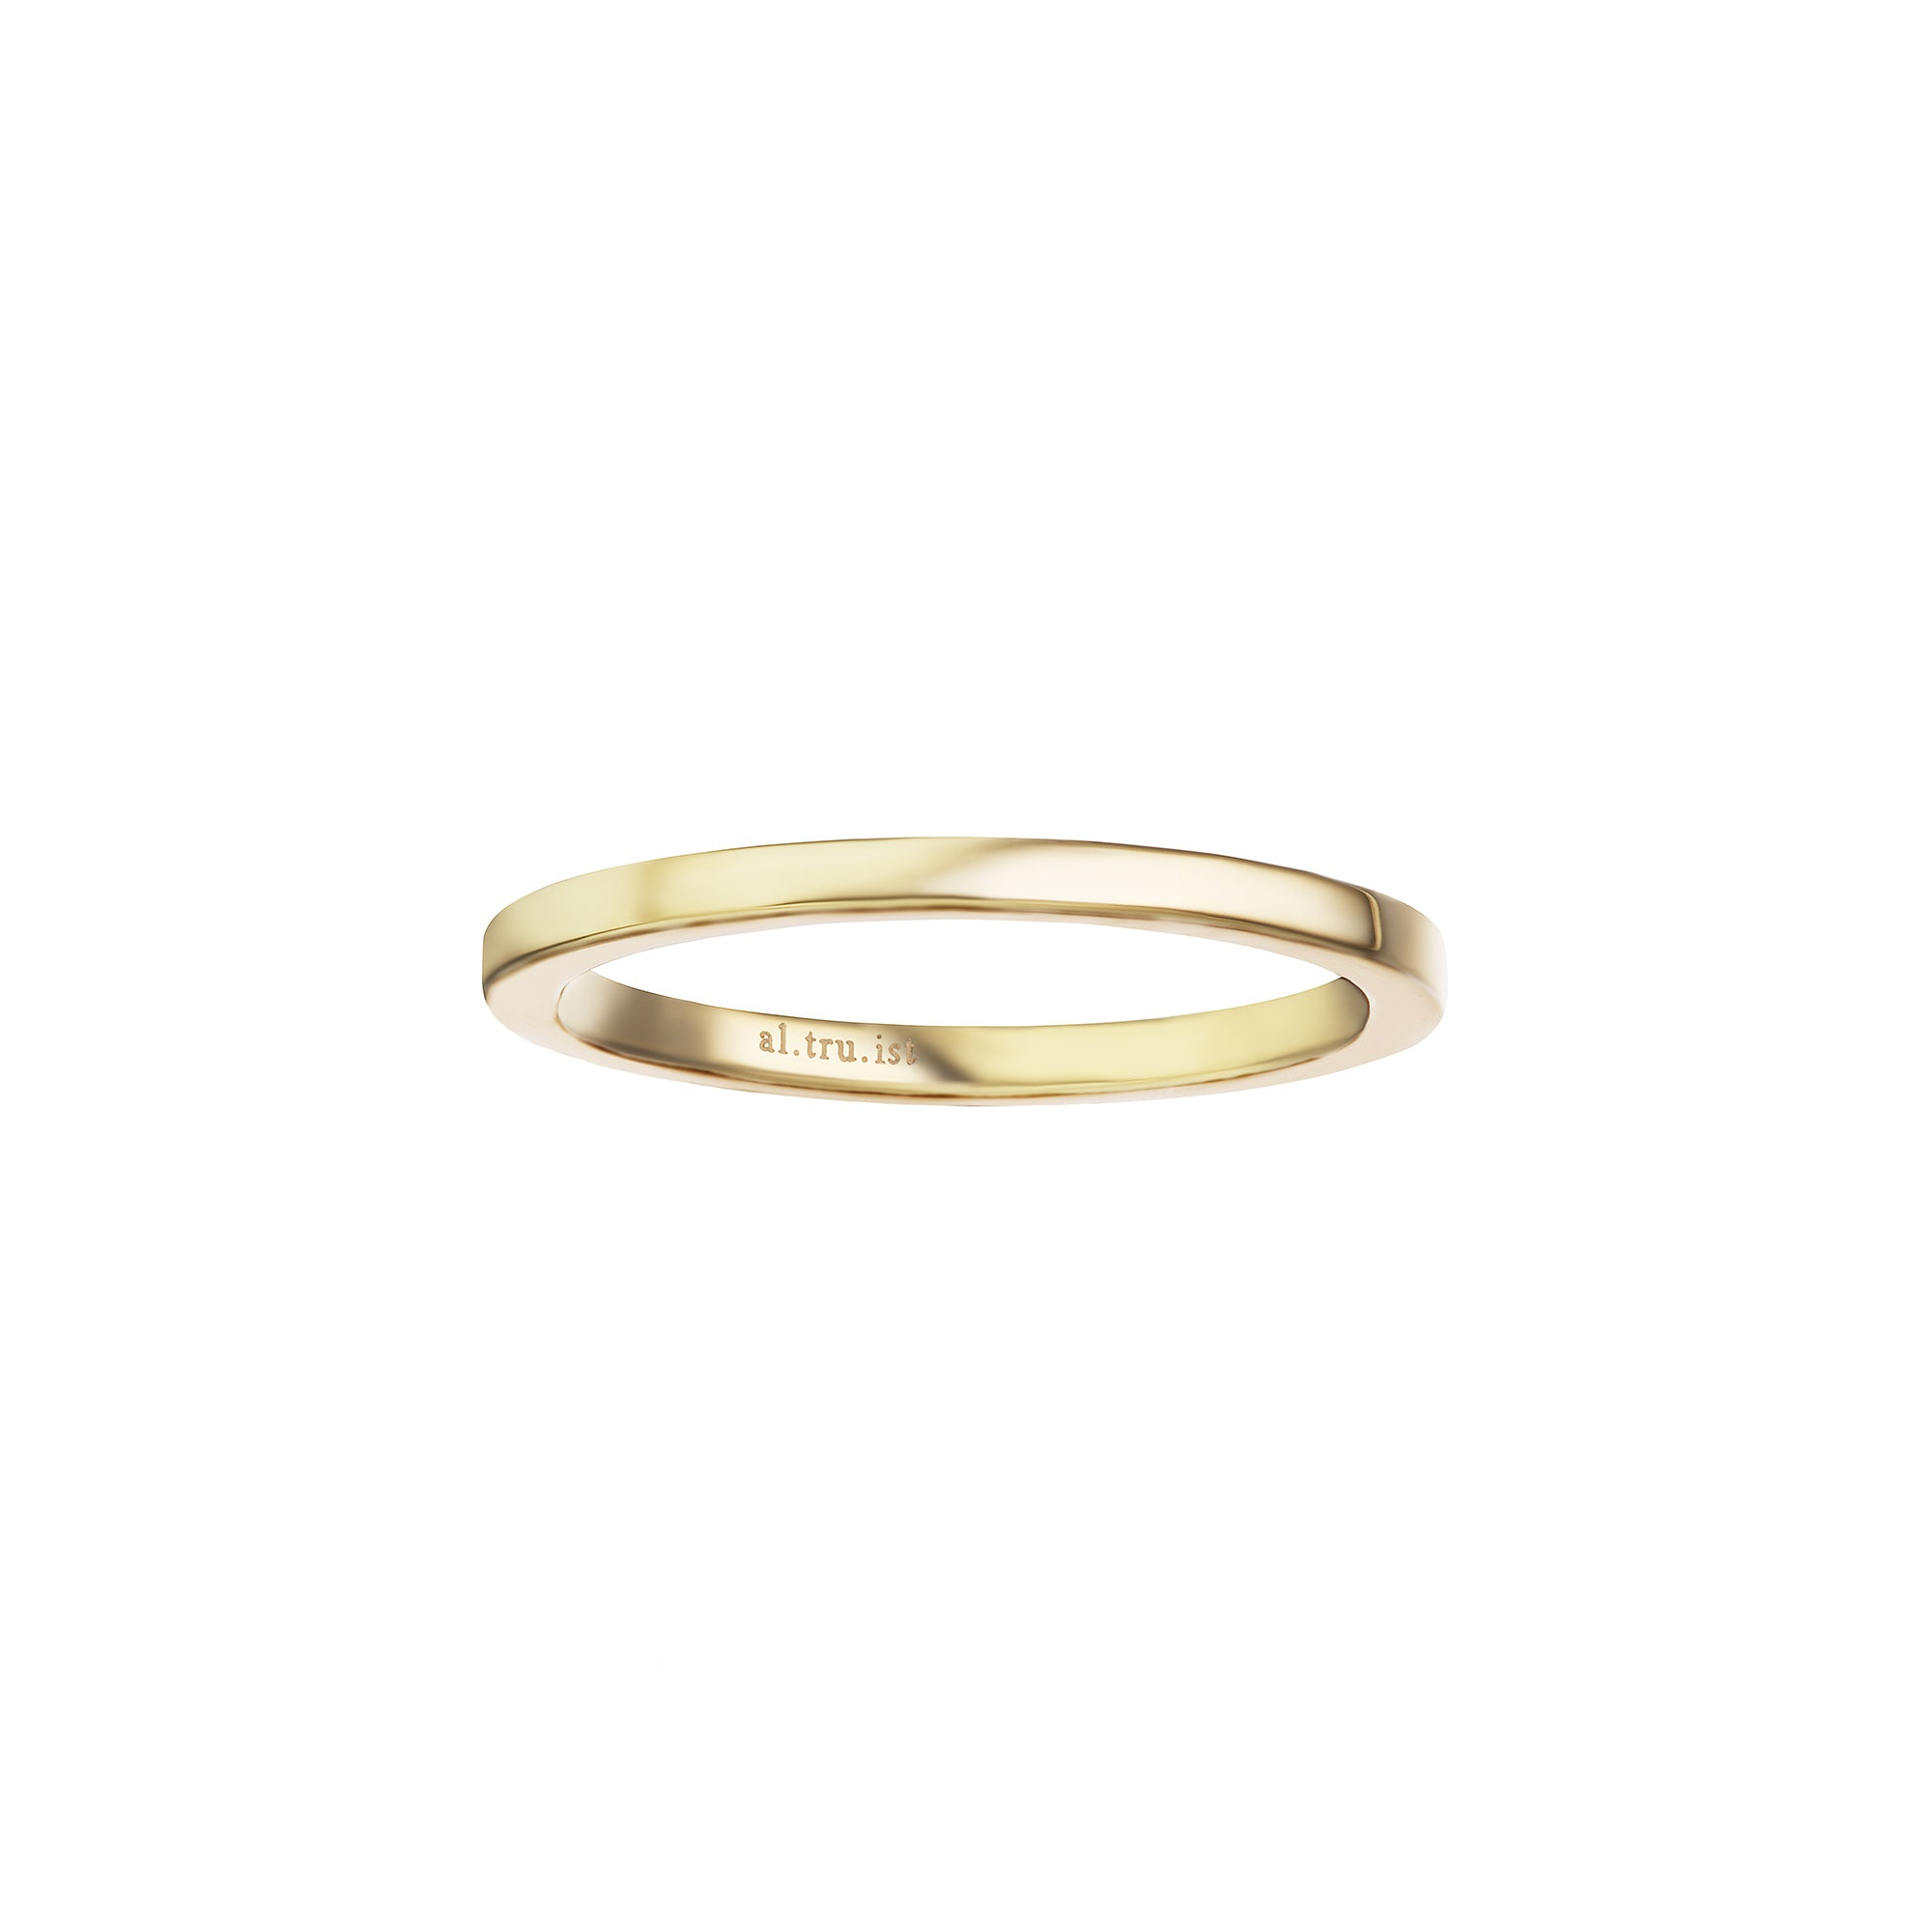 Altruist Midi Pinky Promised Ring - Gold - Rings - Broken English Jewelry